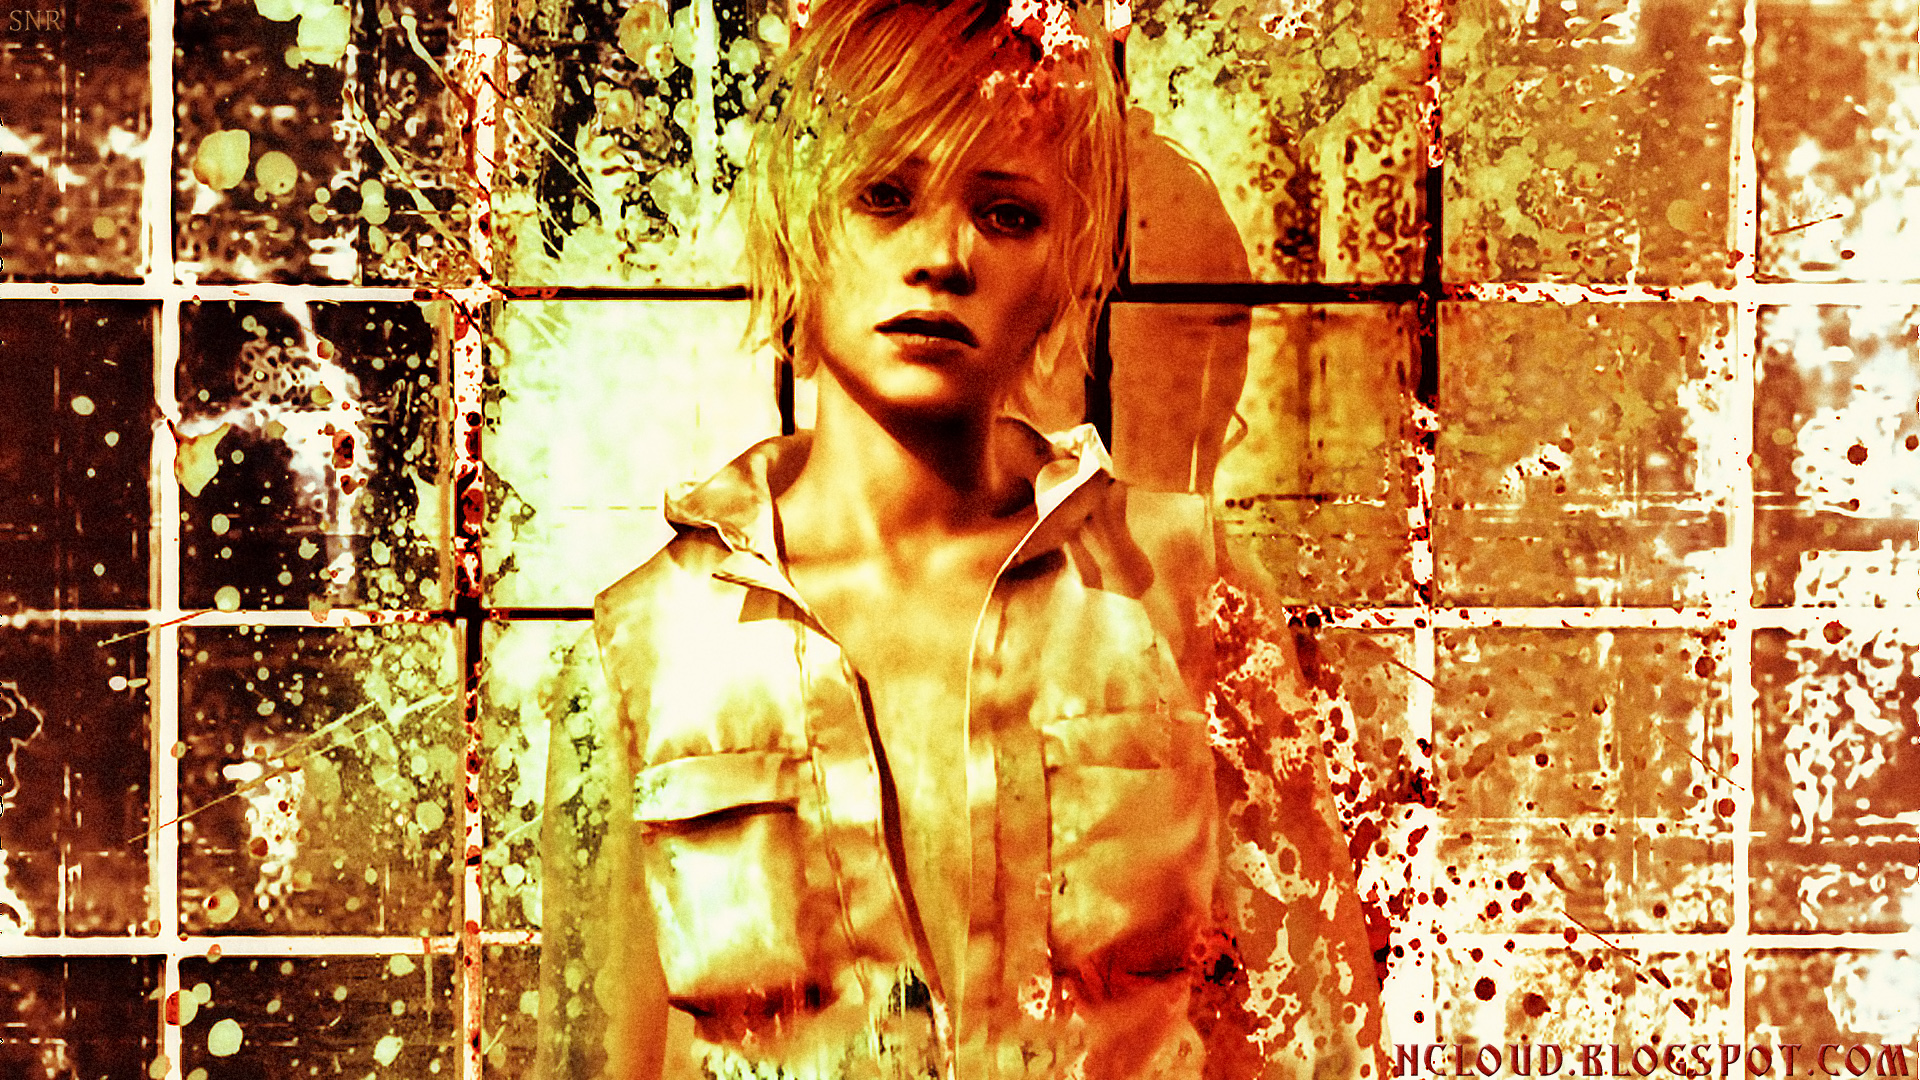 Silent Hill 3 Wallpaper: Games Movies Music Anime: My Silent Hill 3 HD Wallpaper